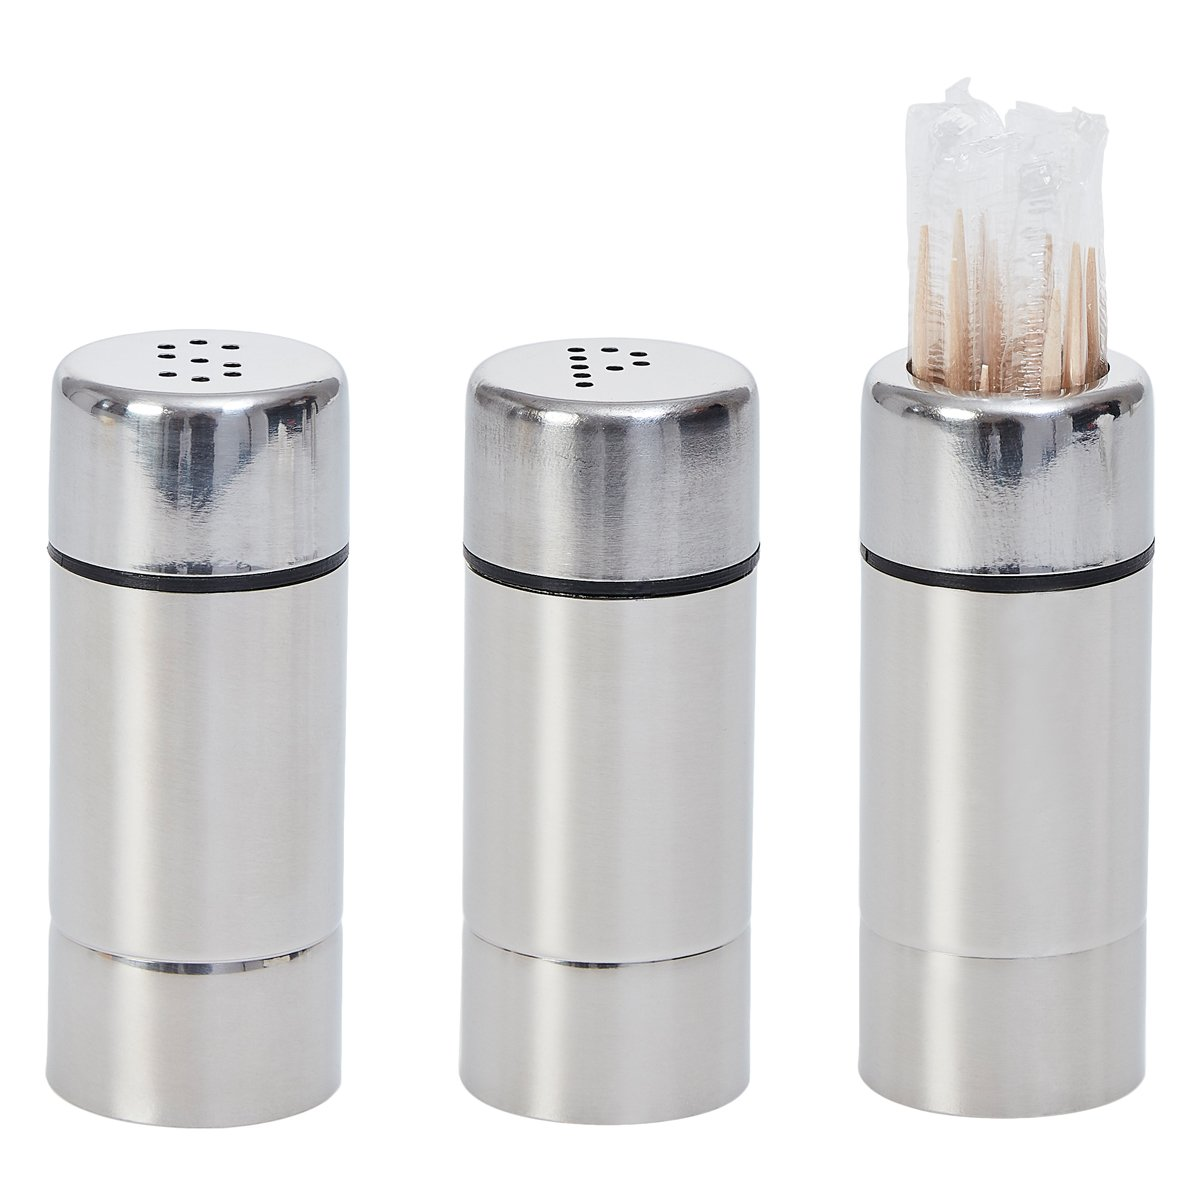 Decor Service Set Silver Stainless Steel 7.2/x 2.9/cm